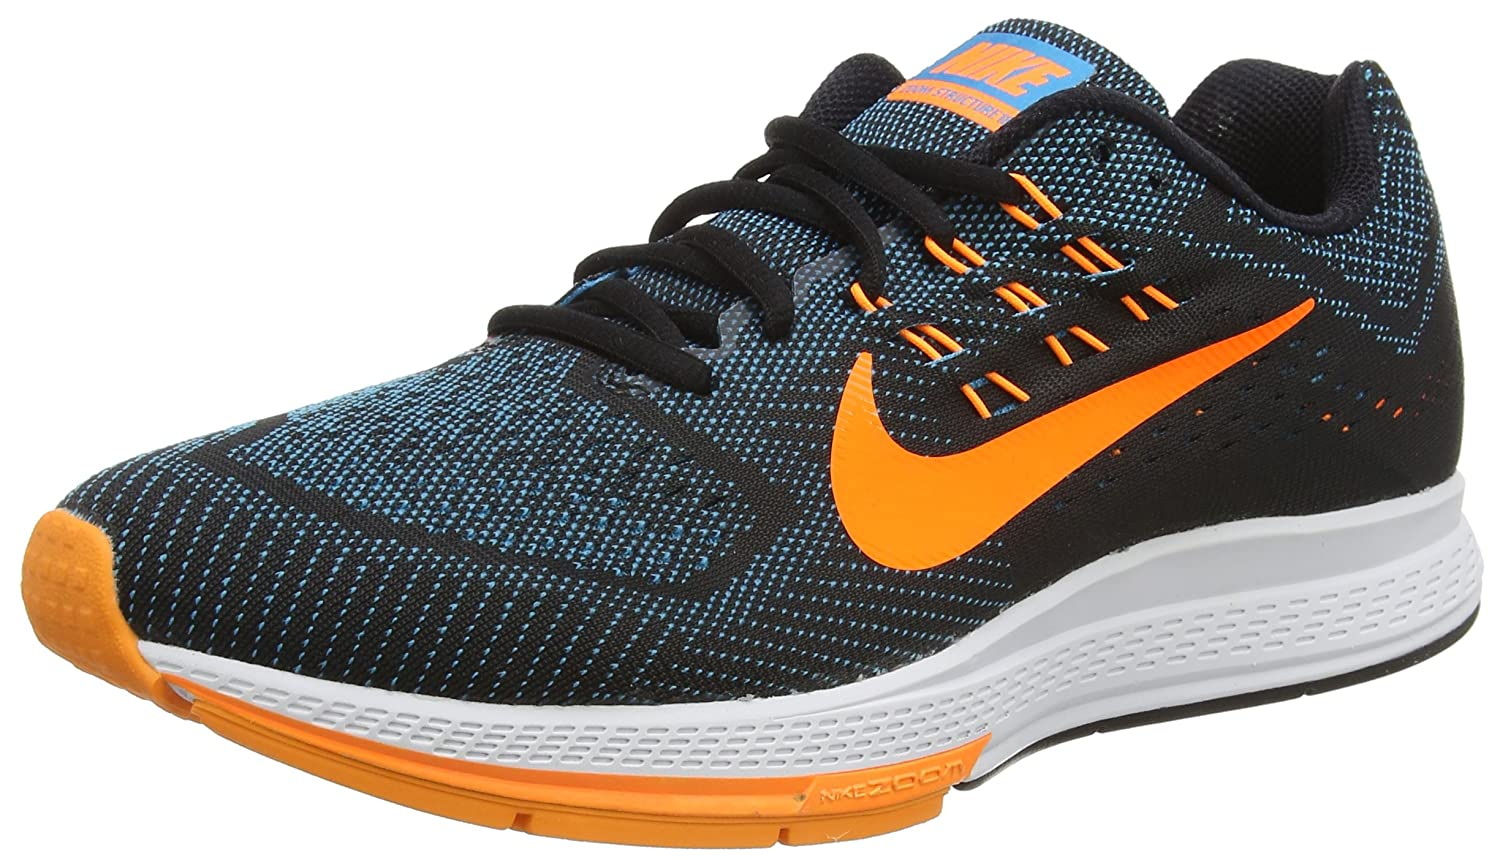 00be09f75df12 ... Nike Air Zoom Structure 18 Mens Running Trainer Multicolor (Blue  LagoonOrangeBlackBright Crimson) 10 UK ...